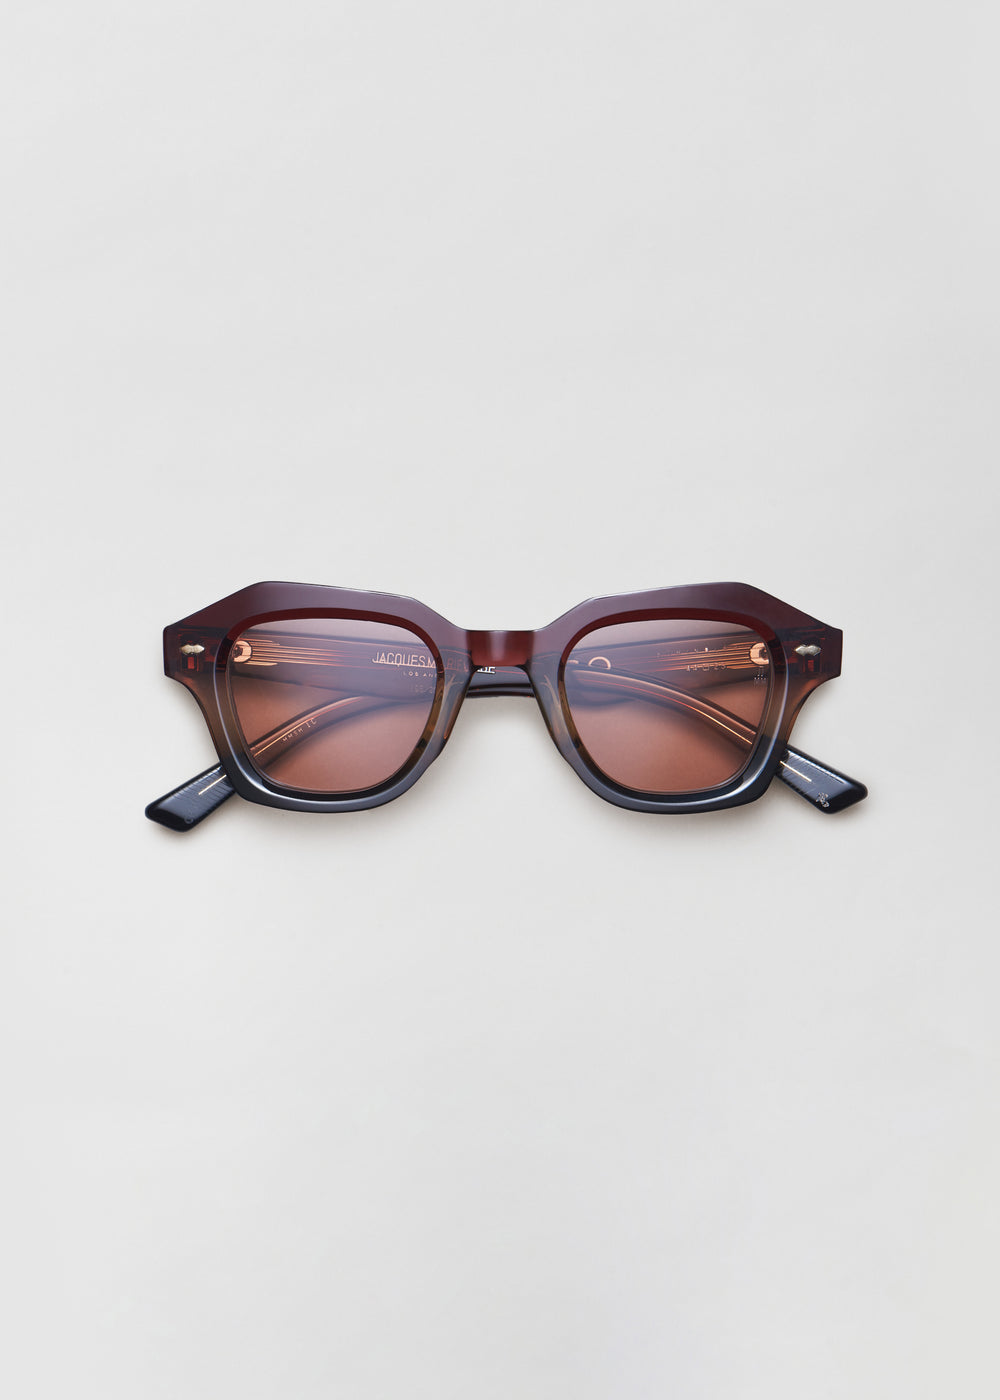 Schindler Sunglasses in Noir in Empire by Co Collections